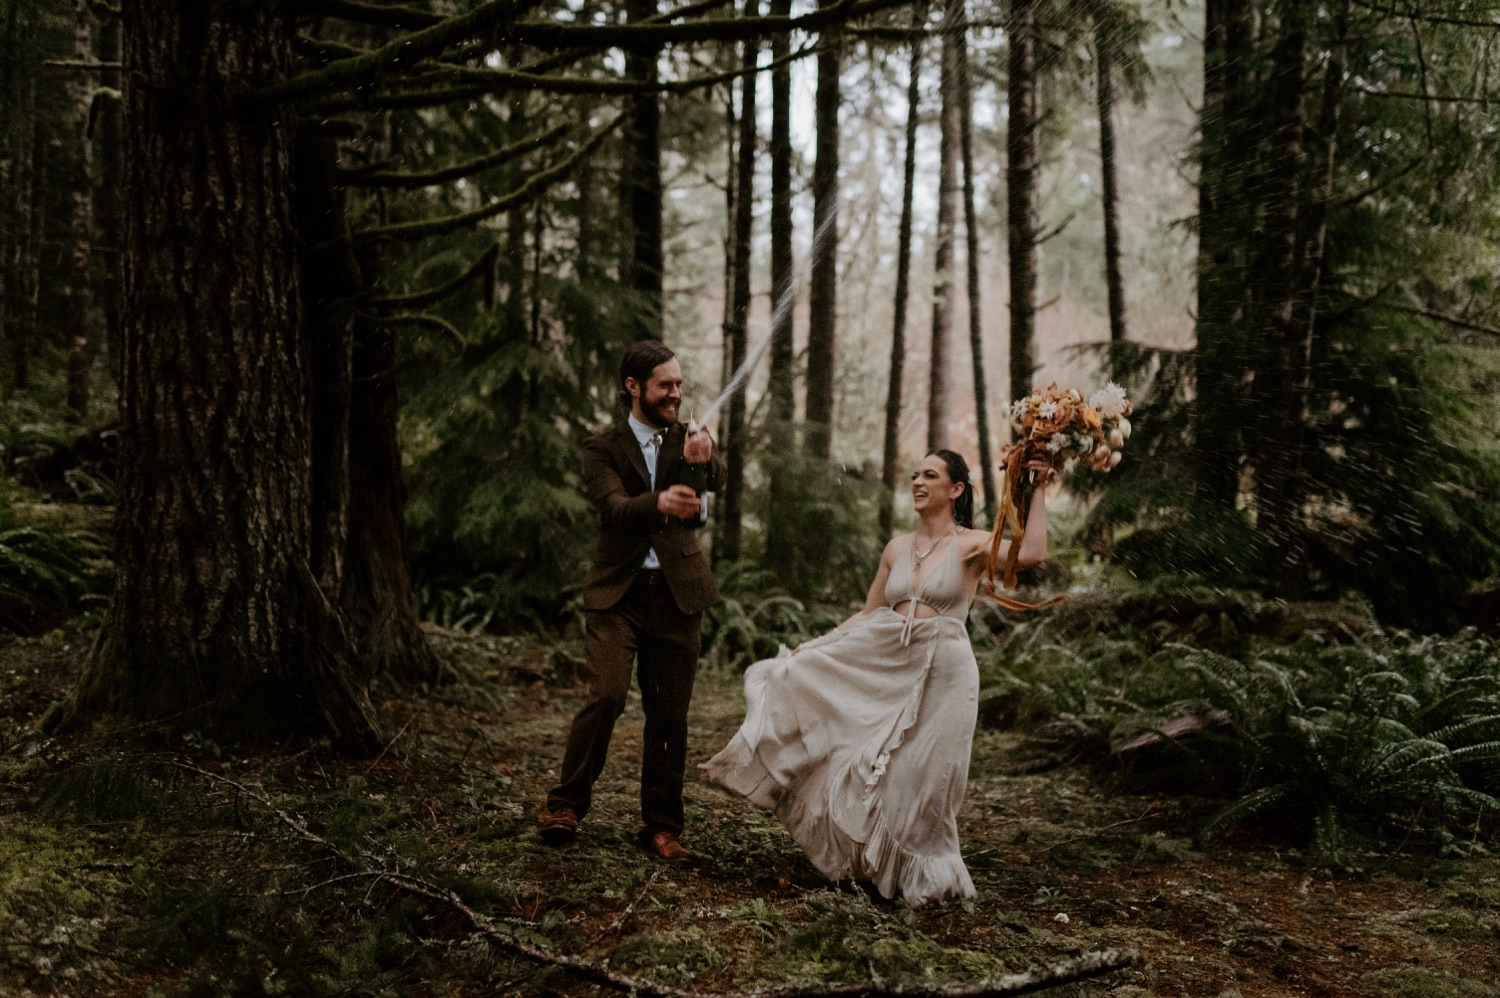 The Woodlands House Sandy Oregon Elopement Portland Elopement Photographer PNW Adventurous Elopement Anais Possamai Photography 045